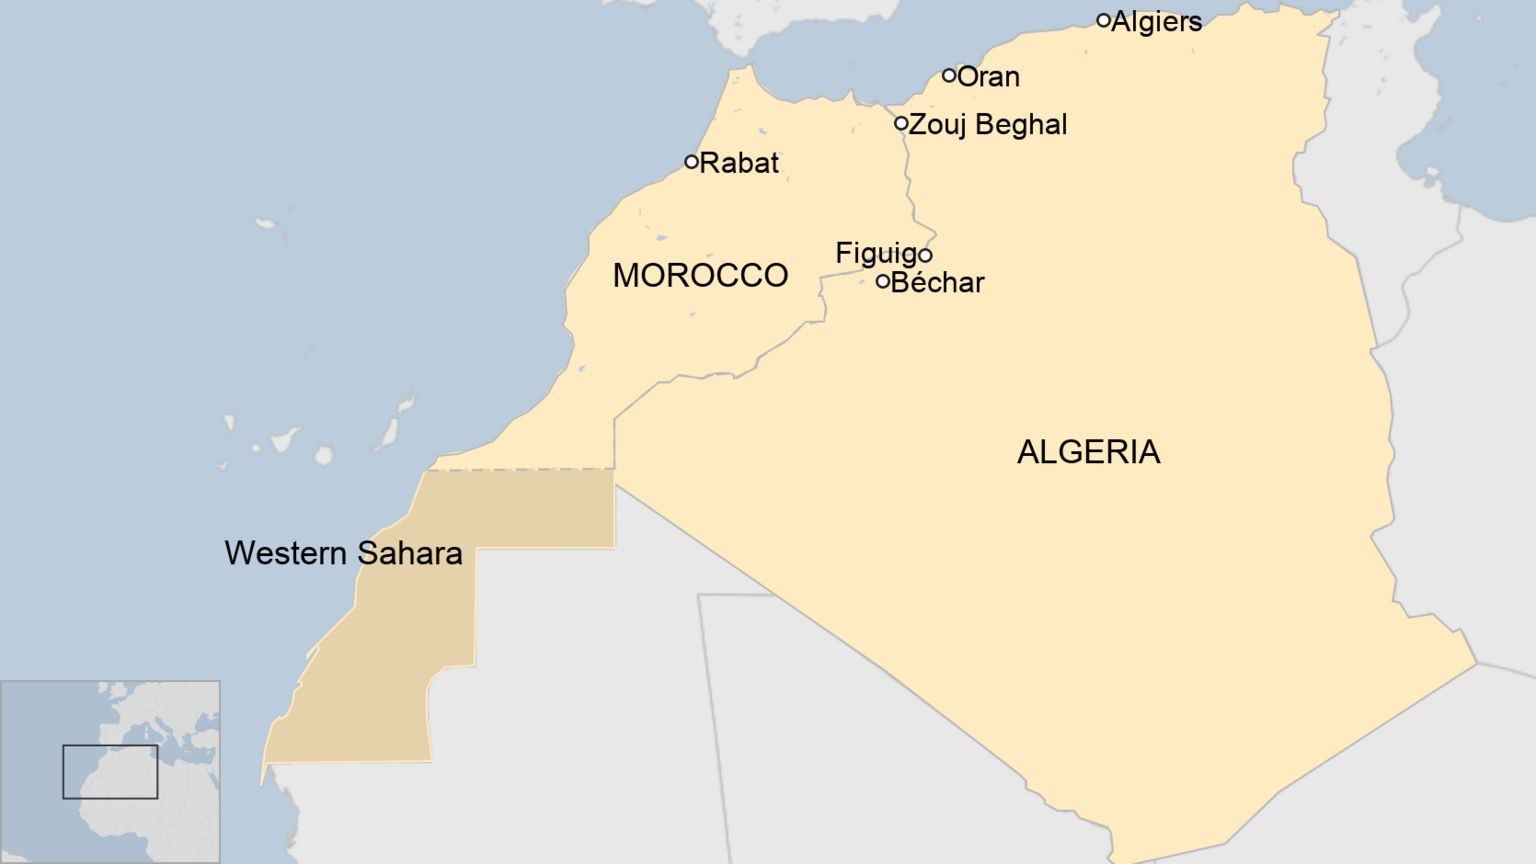 A map of Morocco and Algeira